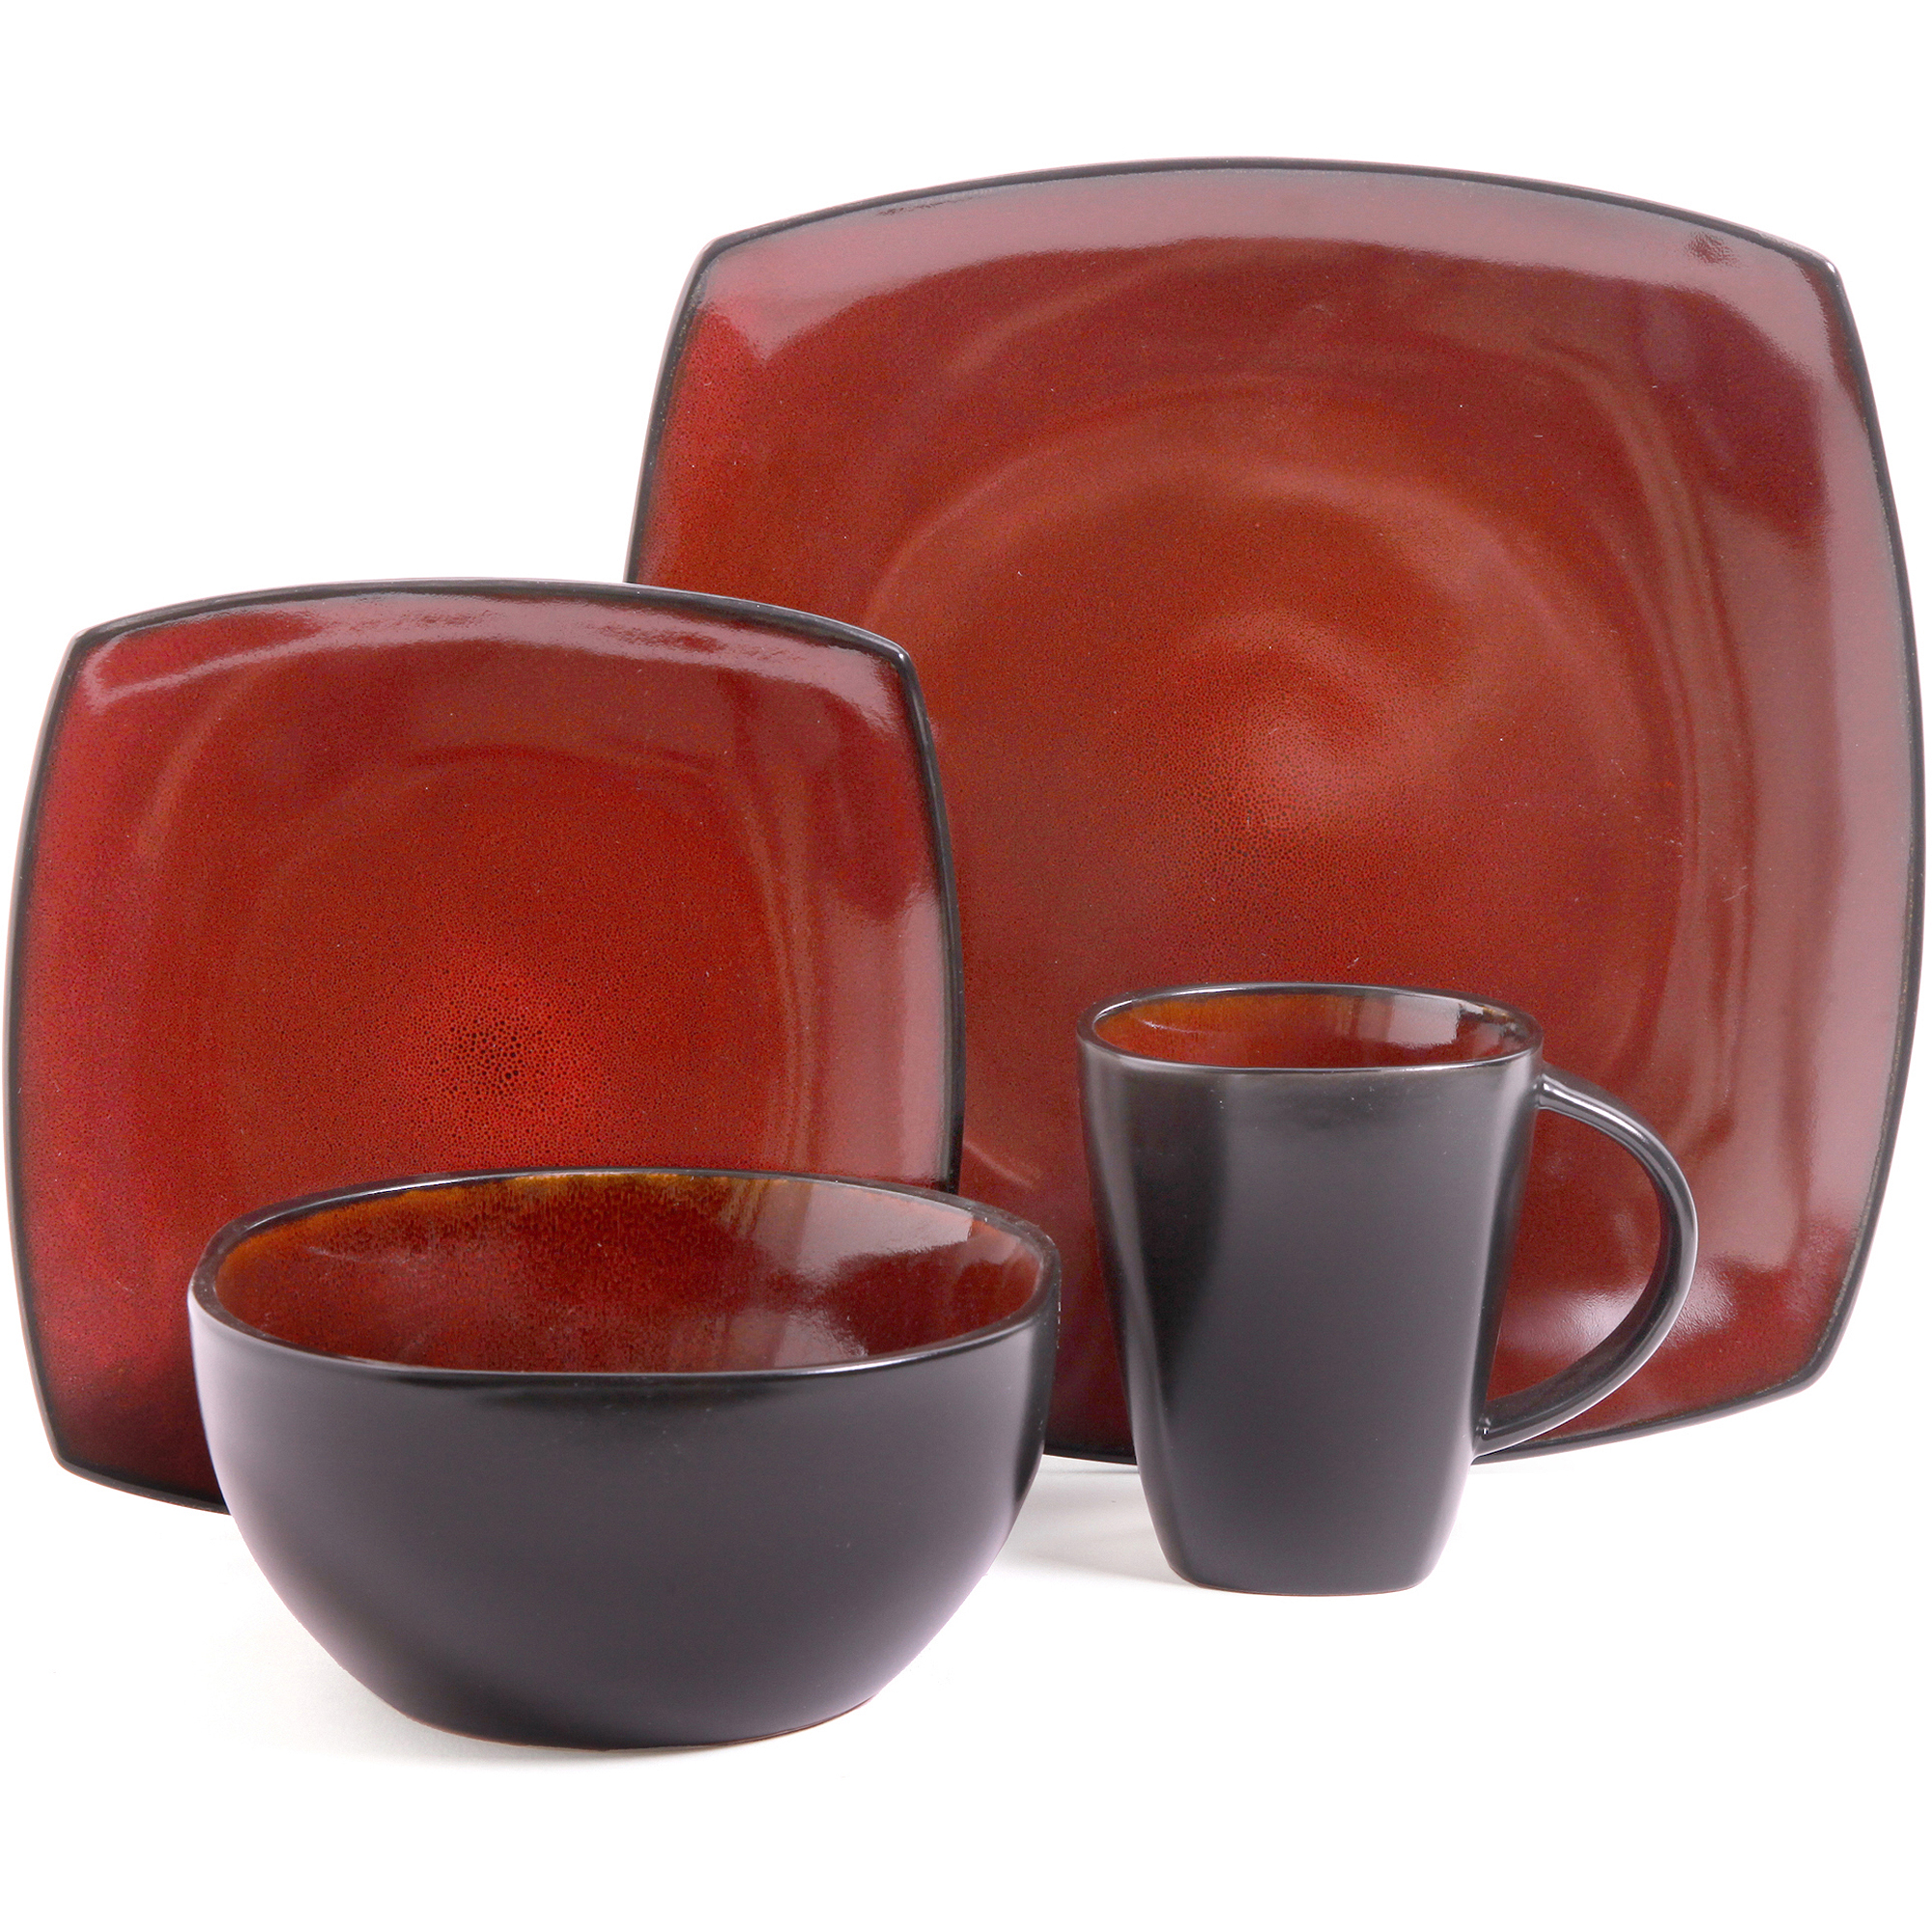 Better Homes And Gardens 16 Piece Dinnerware Set, Tuscan Red   Walmart.com